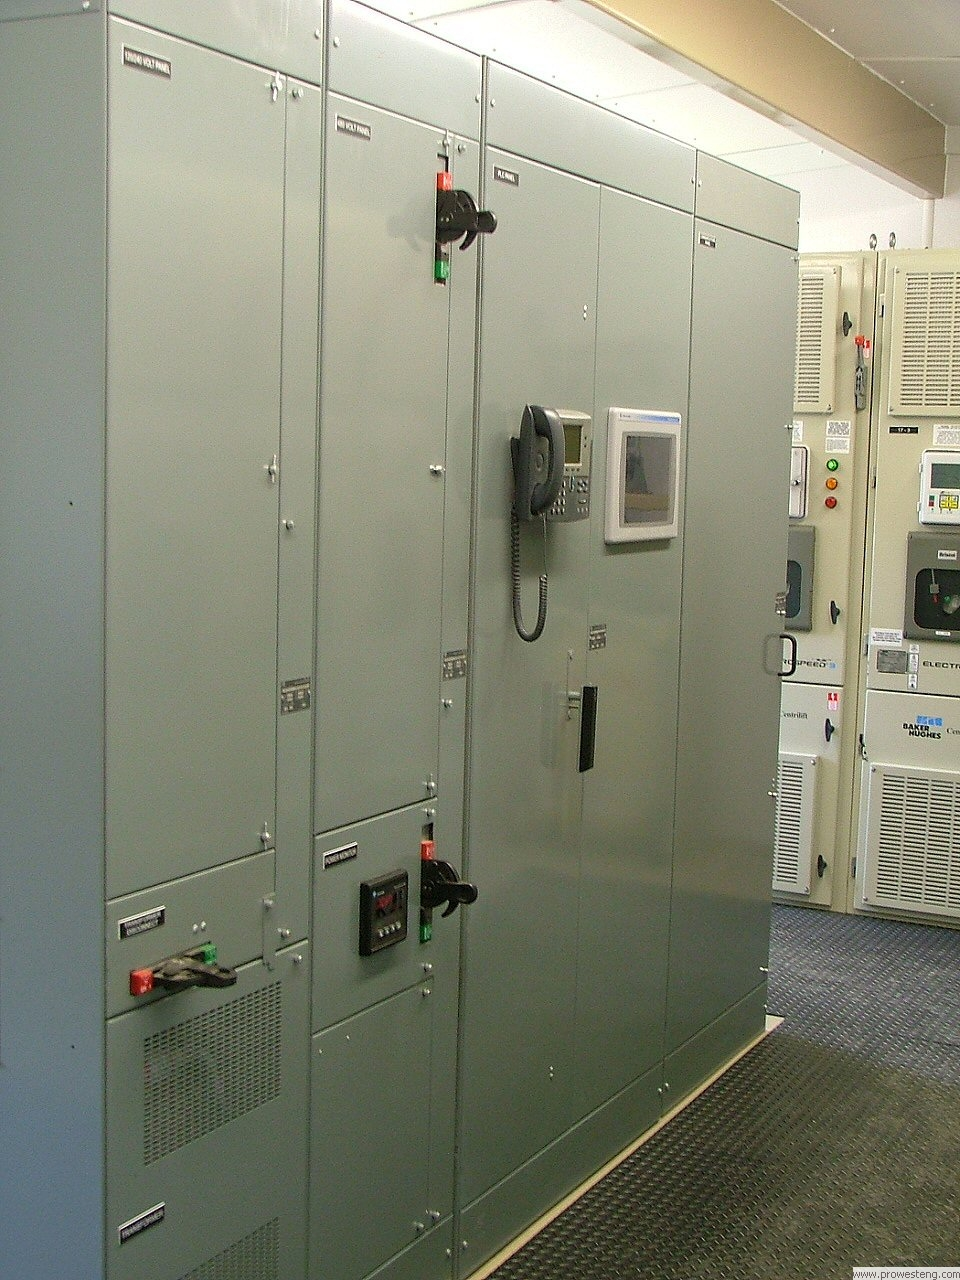 Low Voltage Motor Control Center line-up with integrated PLC control panel and communications equipment.